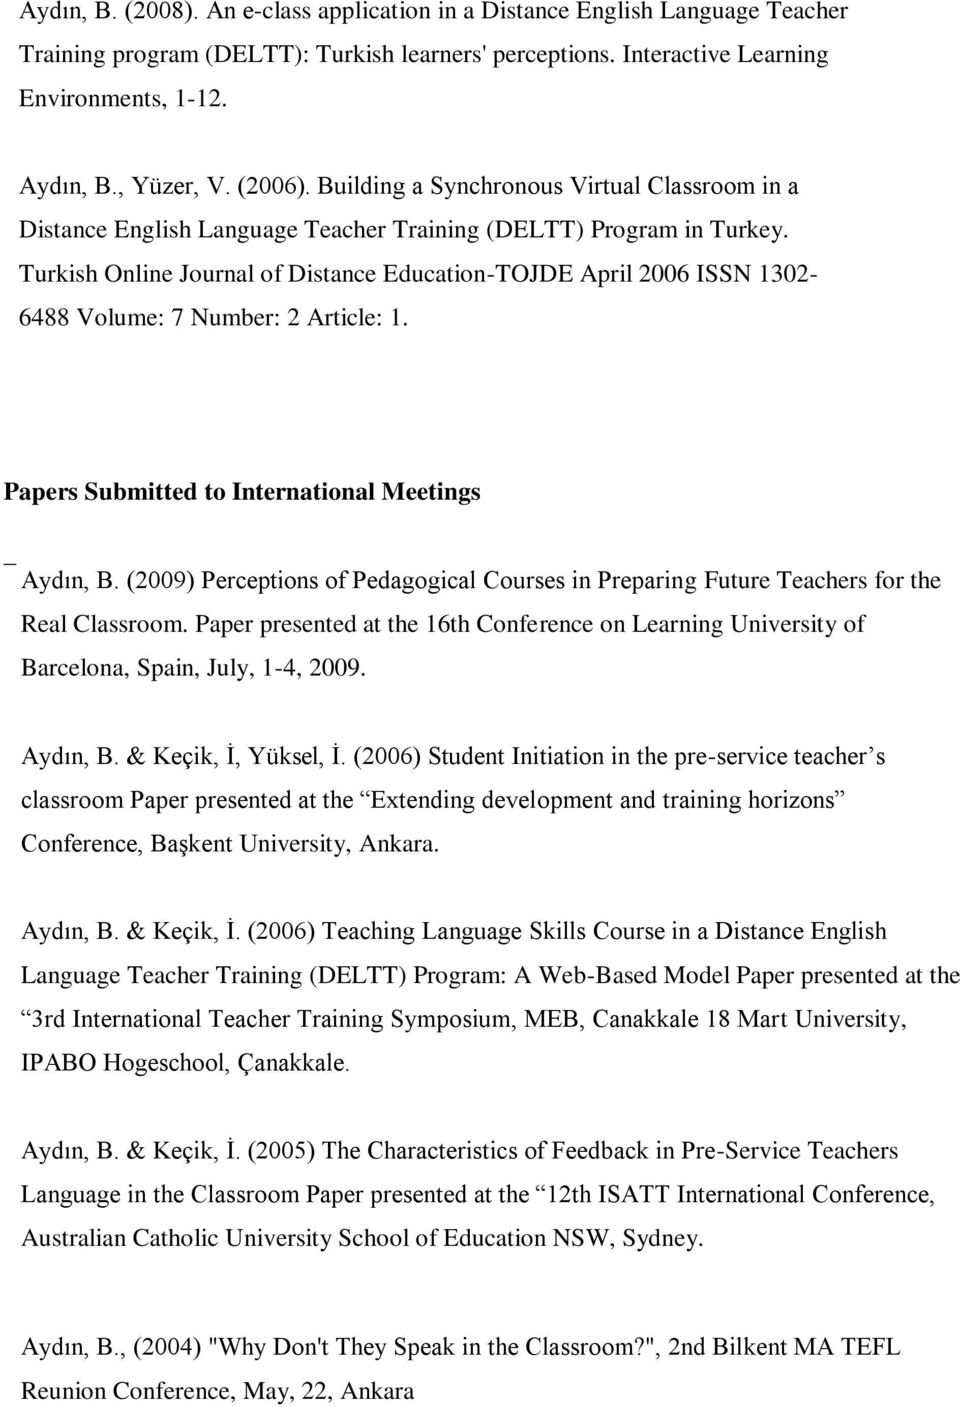 Turkish Online Journal of Distance Education-TOJDE April 2006 ISSN 1302-6488 Volume: 7 Number: 2 Article: 1. Papers Submitted to International Meetings 1. 1. 2. 3. Aydın, B.